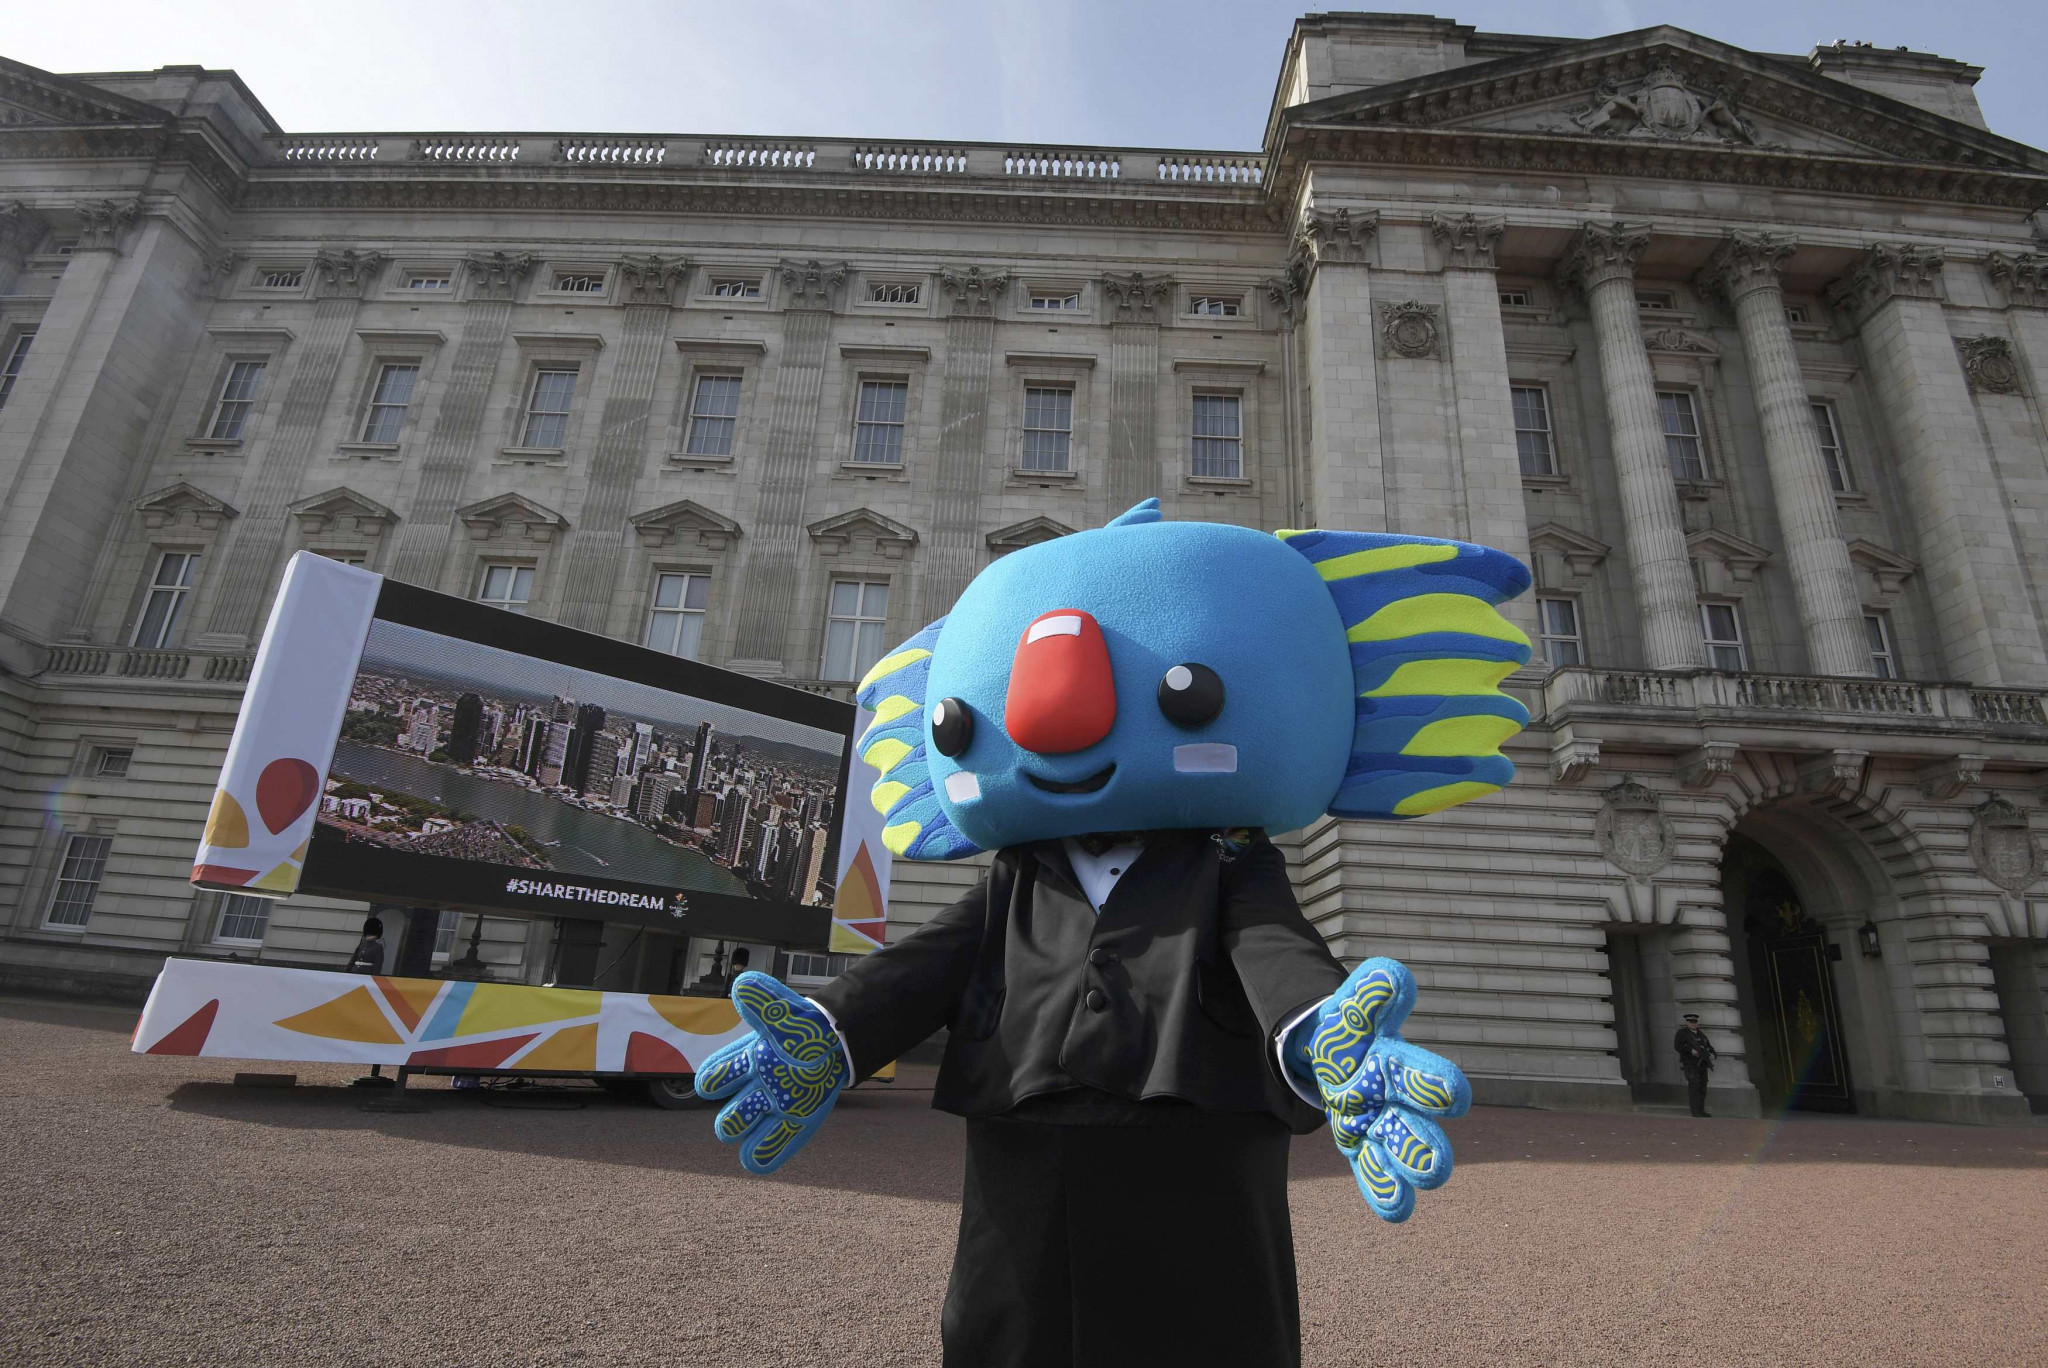 Gold Coast 2018 mascot Borobi was in dancing mood at the start of the Queen's Baton Relay at Buckingham Palace ©Getty Images